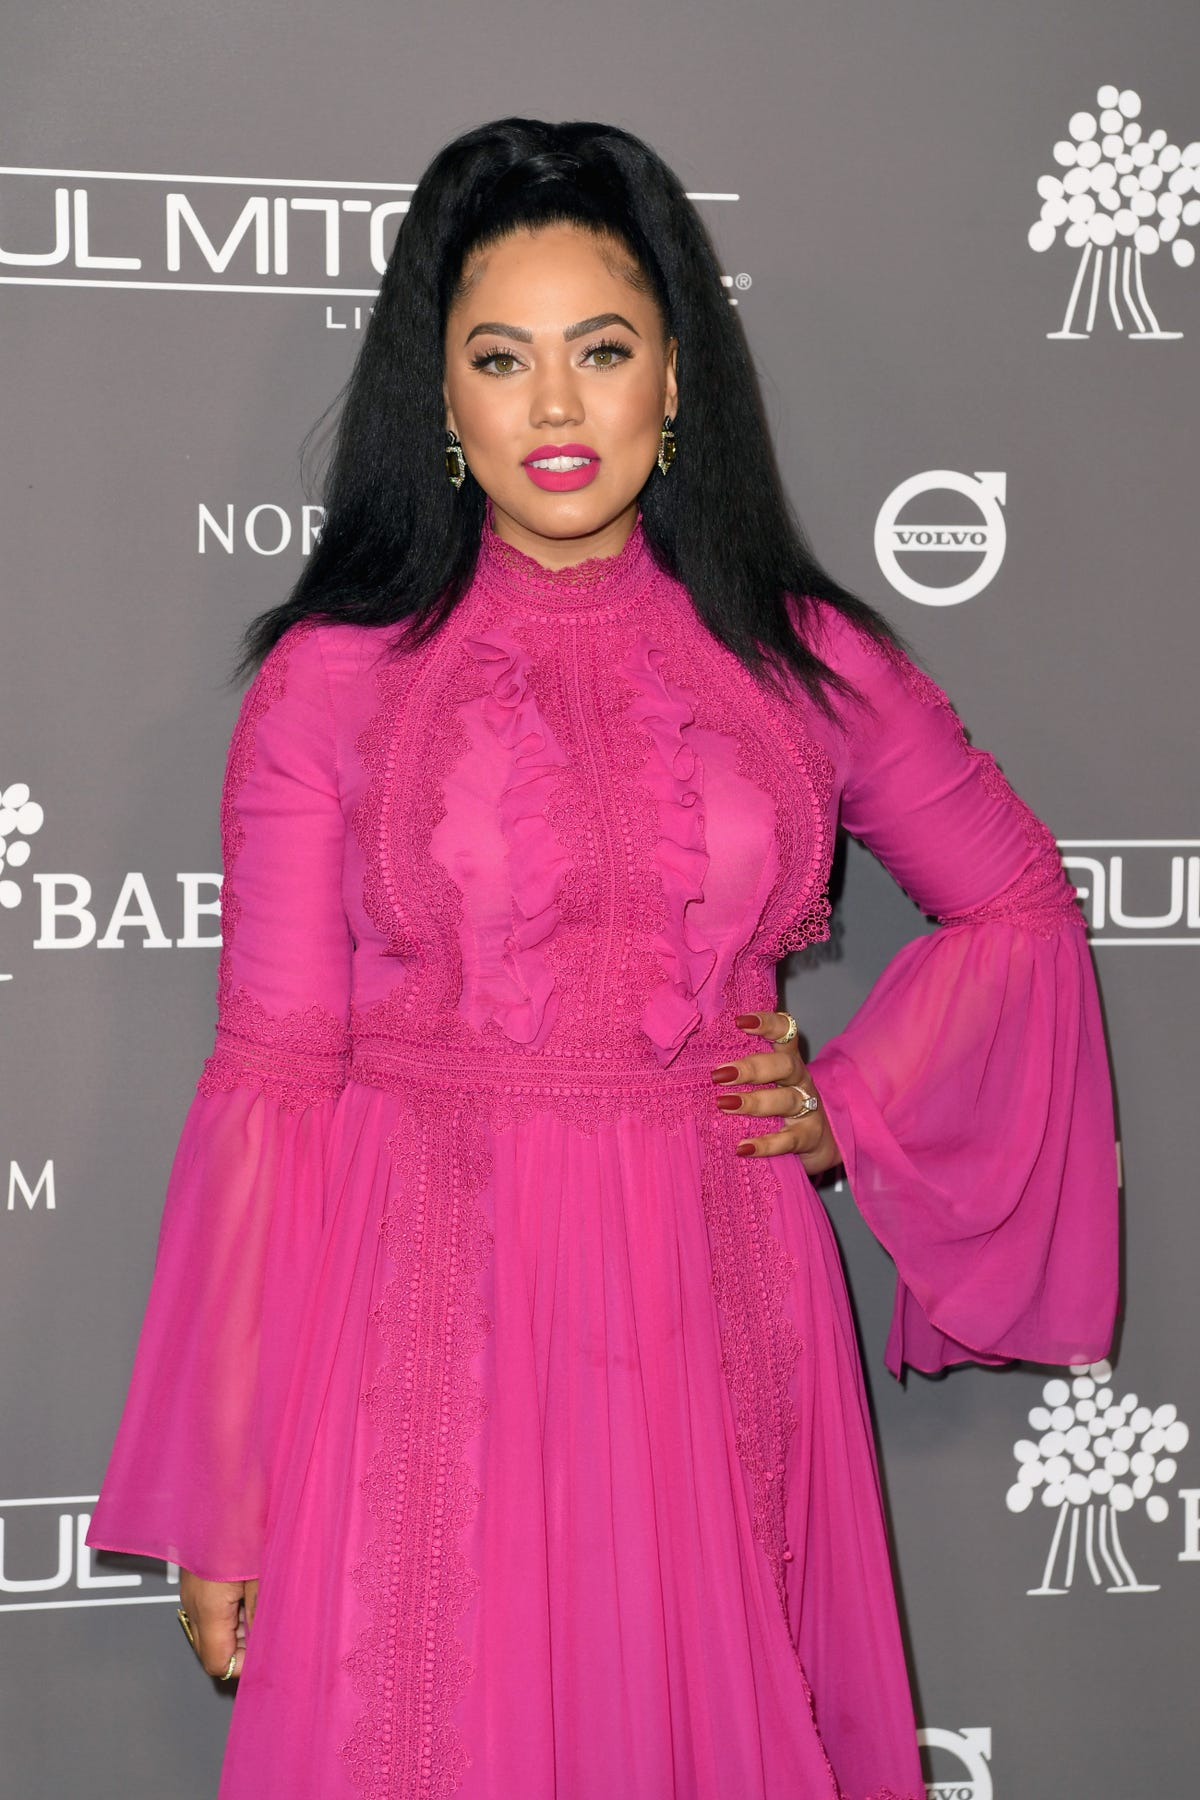 Ayesha Curry praised by Stephen Curry for 'Red Table Talk